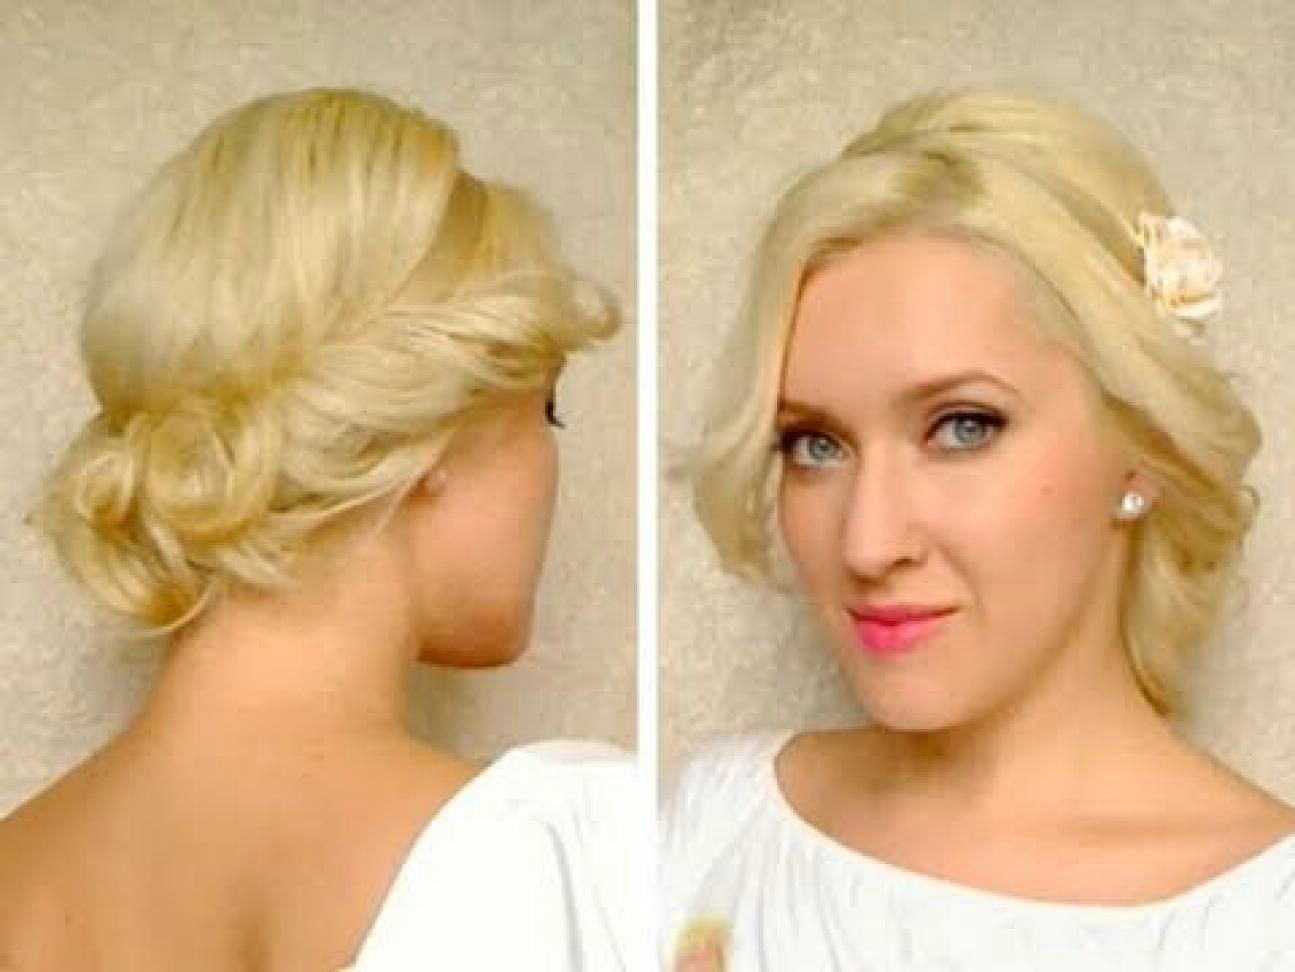 Updo hairstyles for medium hair length hairstyle ideas greek goddess curly hairstyle for medium long layered hair tutorial prom wedding valentines updo solutioingenieria Images